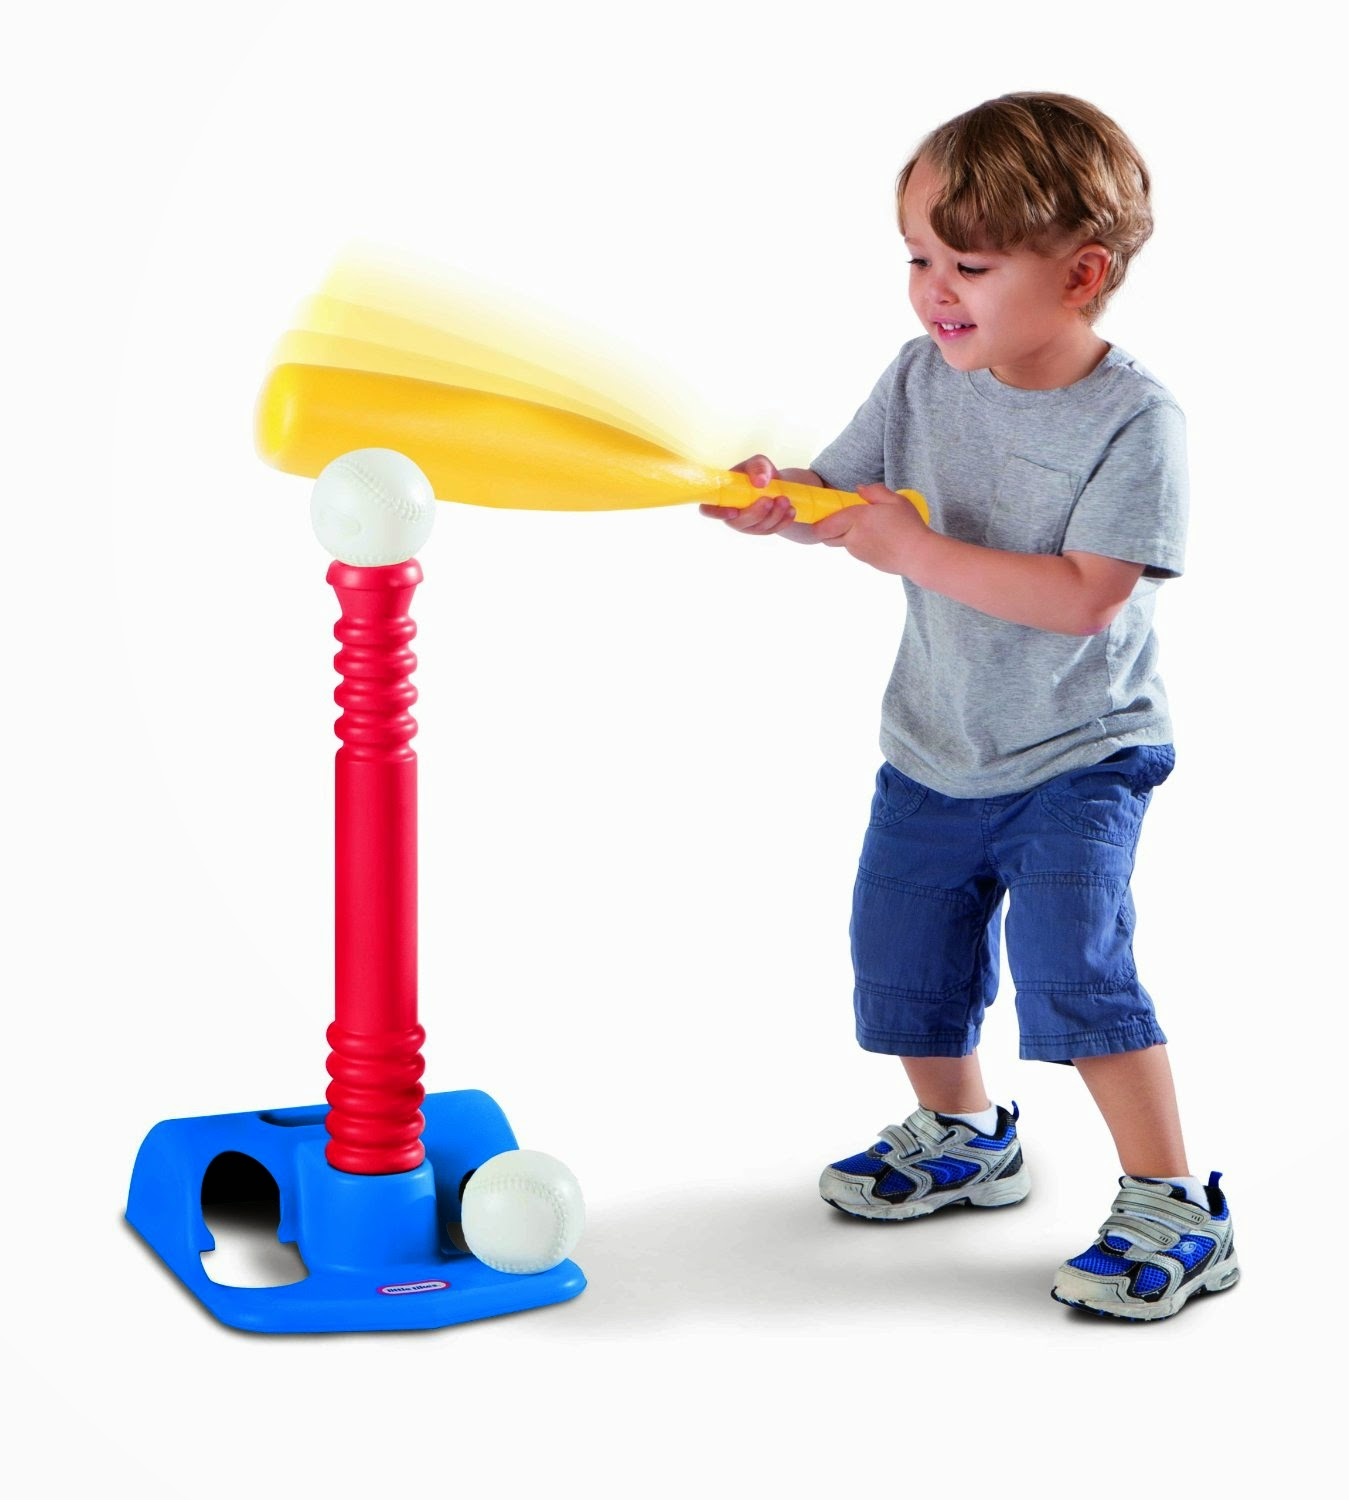 Casa Cicak S Top Children S Gifts Best Toddler Toys For 2